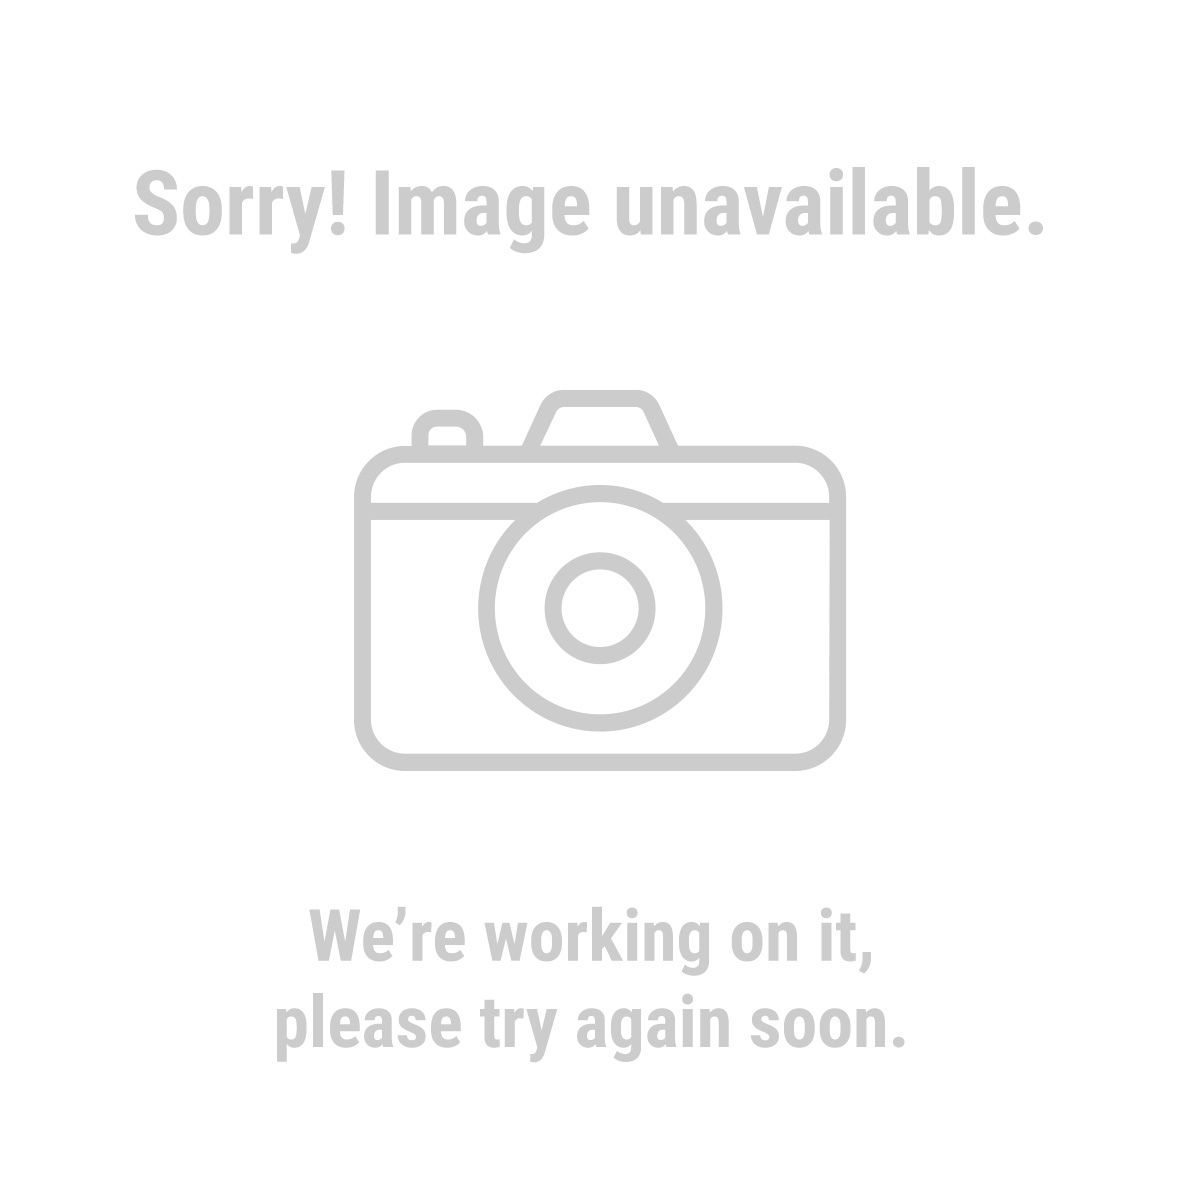 Chicago Electric Power Tools 69452 1/2 in. Variable Speed Reversible Heavy Duty Drill